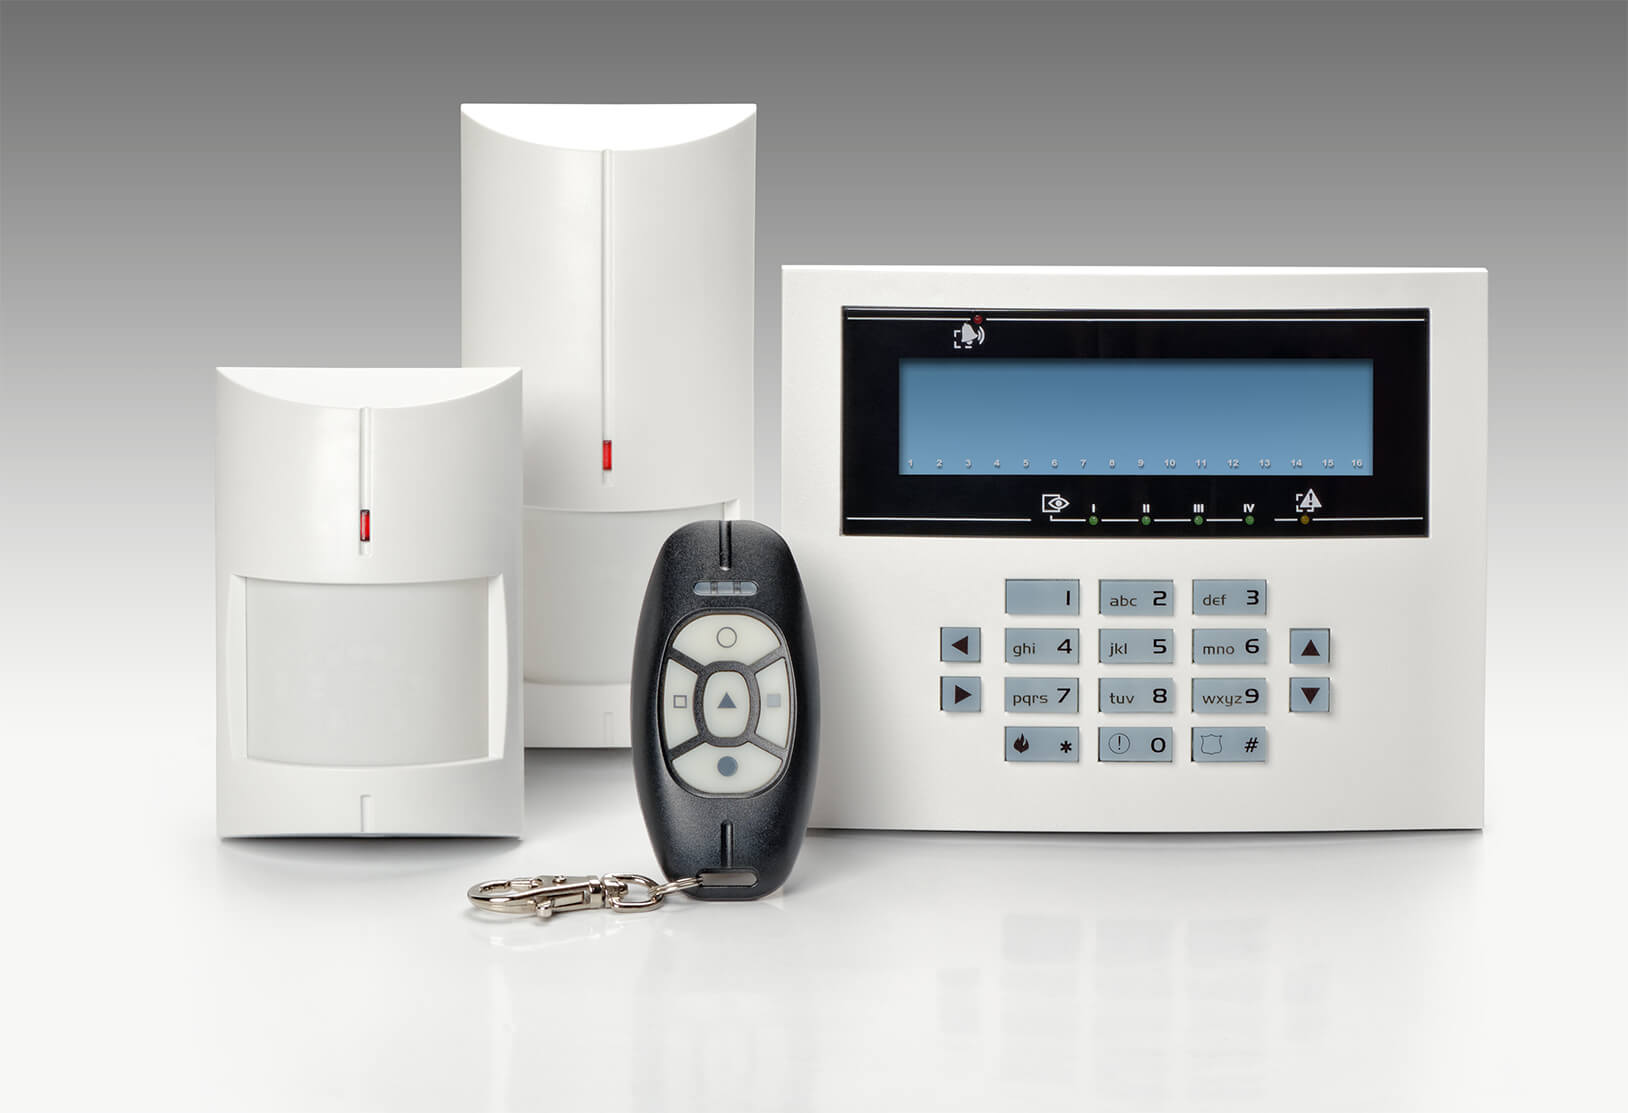 Burglar Alarms Repair in Fulham SW10 - Local Fulham SW10 alarm engineers.Call 02078872244 - See cost/price for burglar alarm repair and book your alarm engineer. No Hidden charges,No Contracts, Book as you need.Engineers on demand.All alarm makes repaired.Same day service ability.